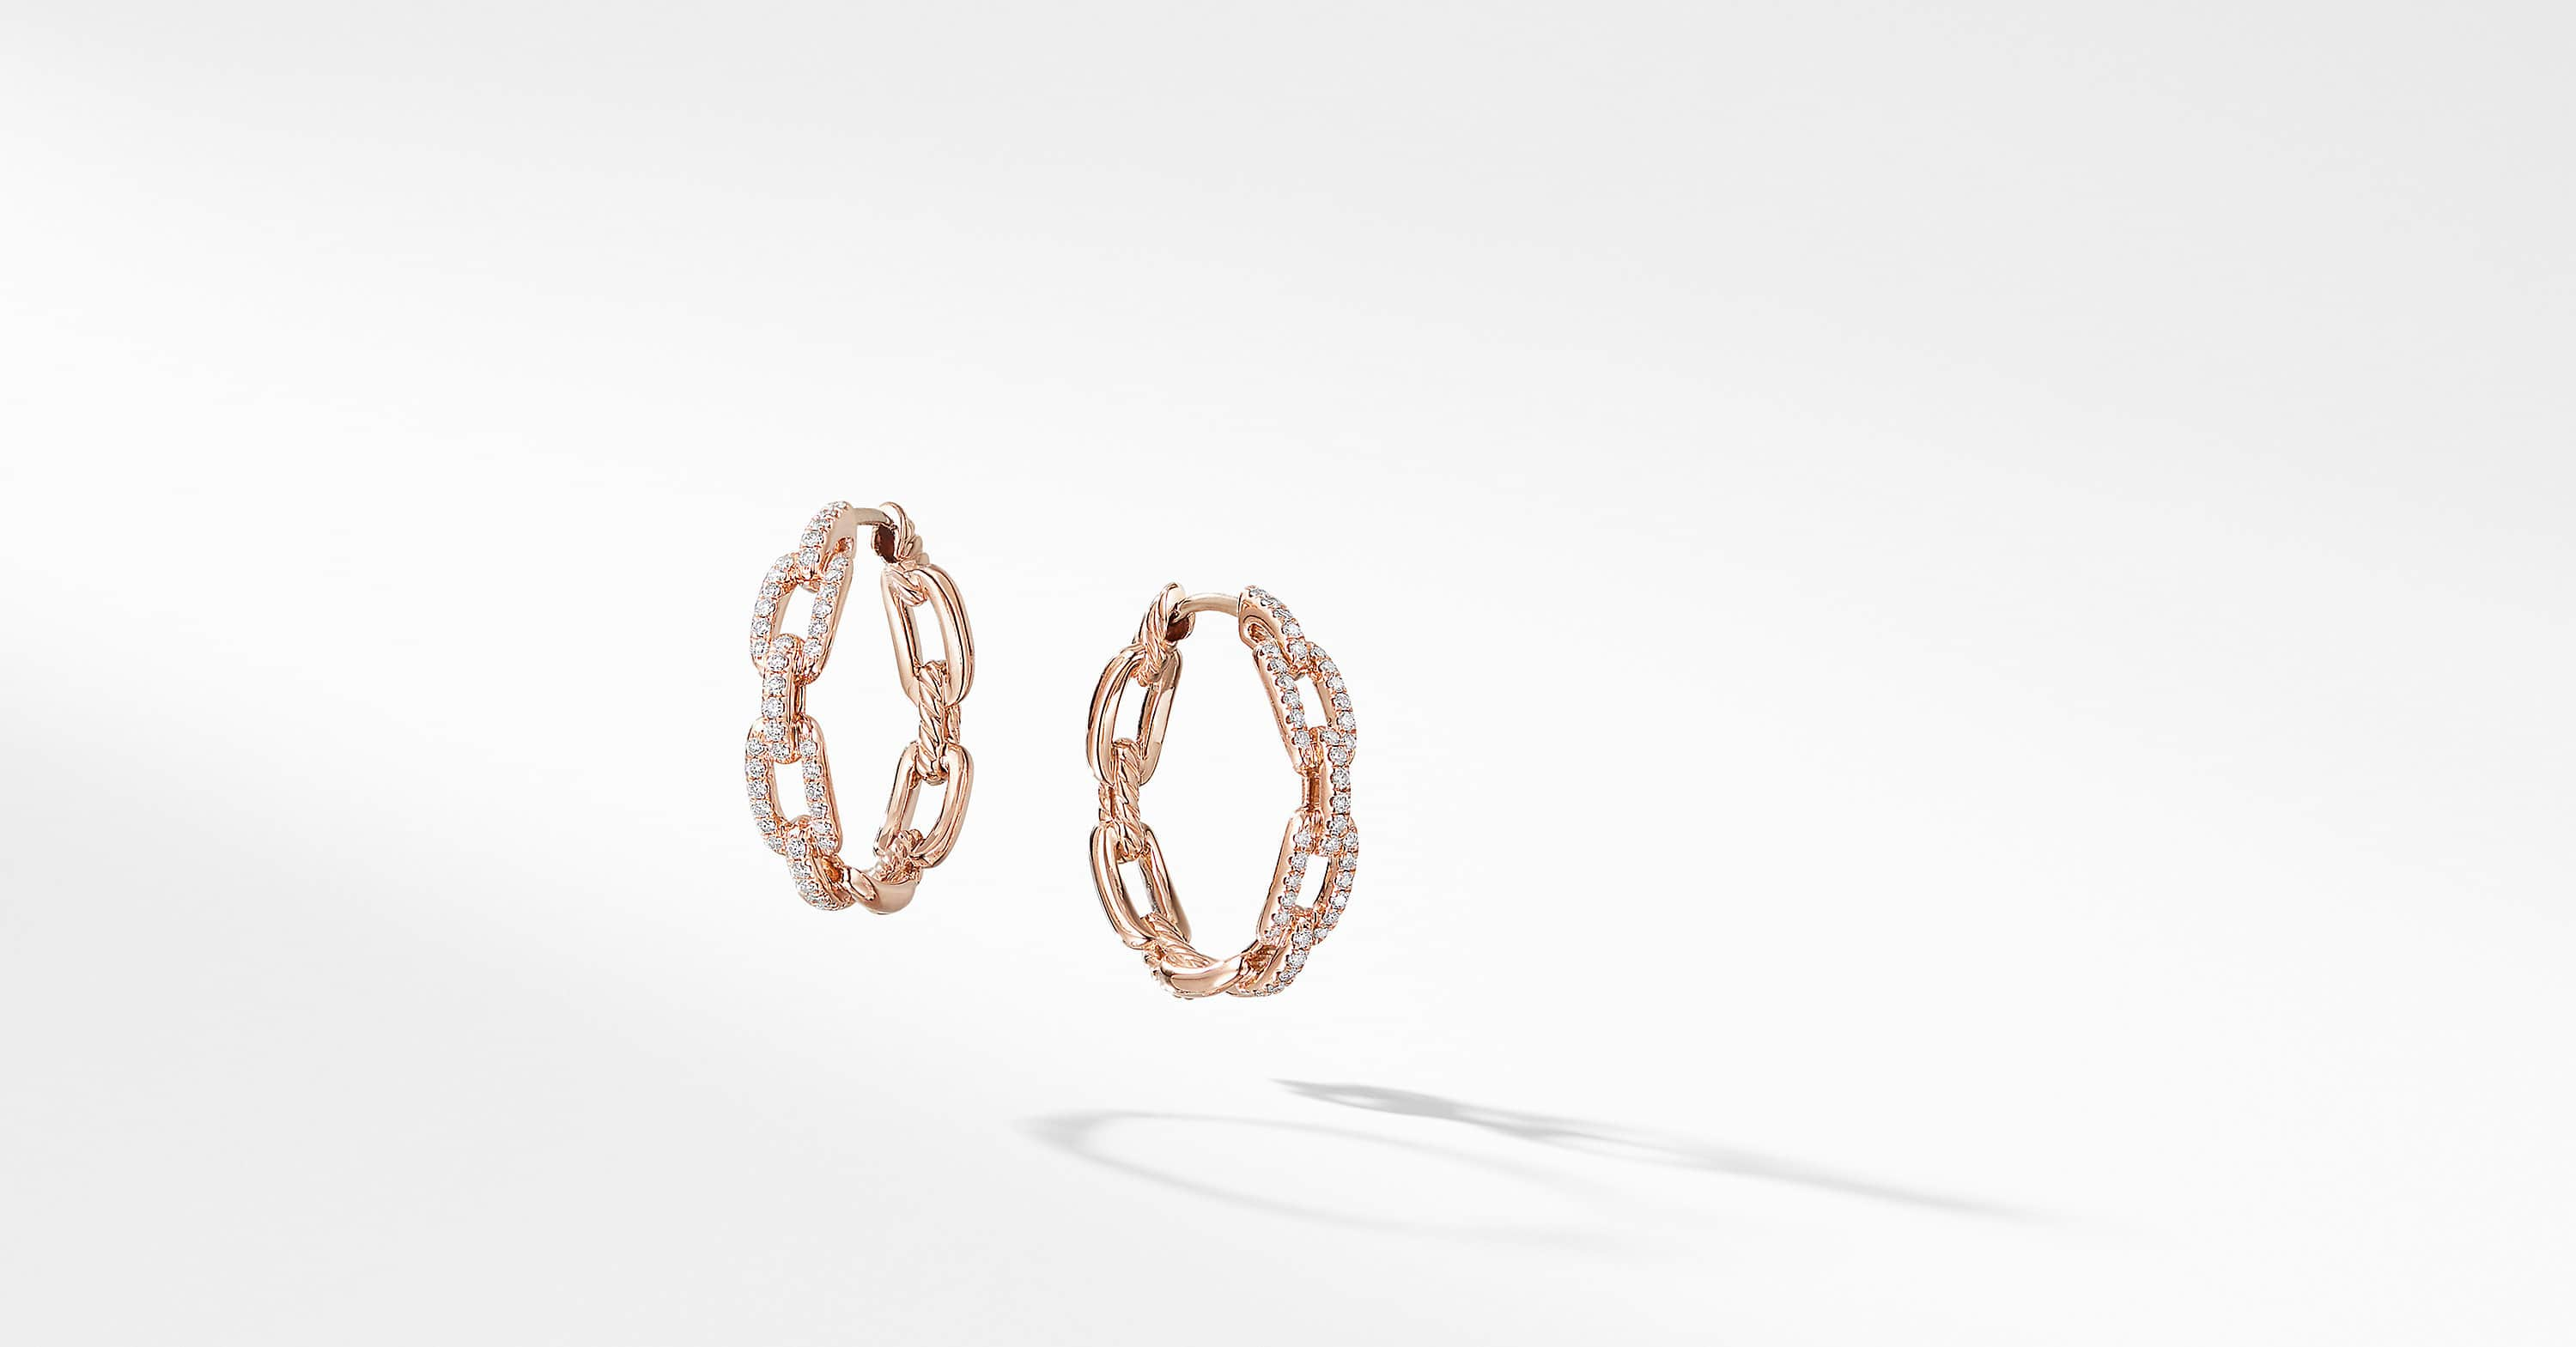 Stax Medium Chain Link Hoop Earrings with Diamonds in 18K Rose Gold